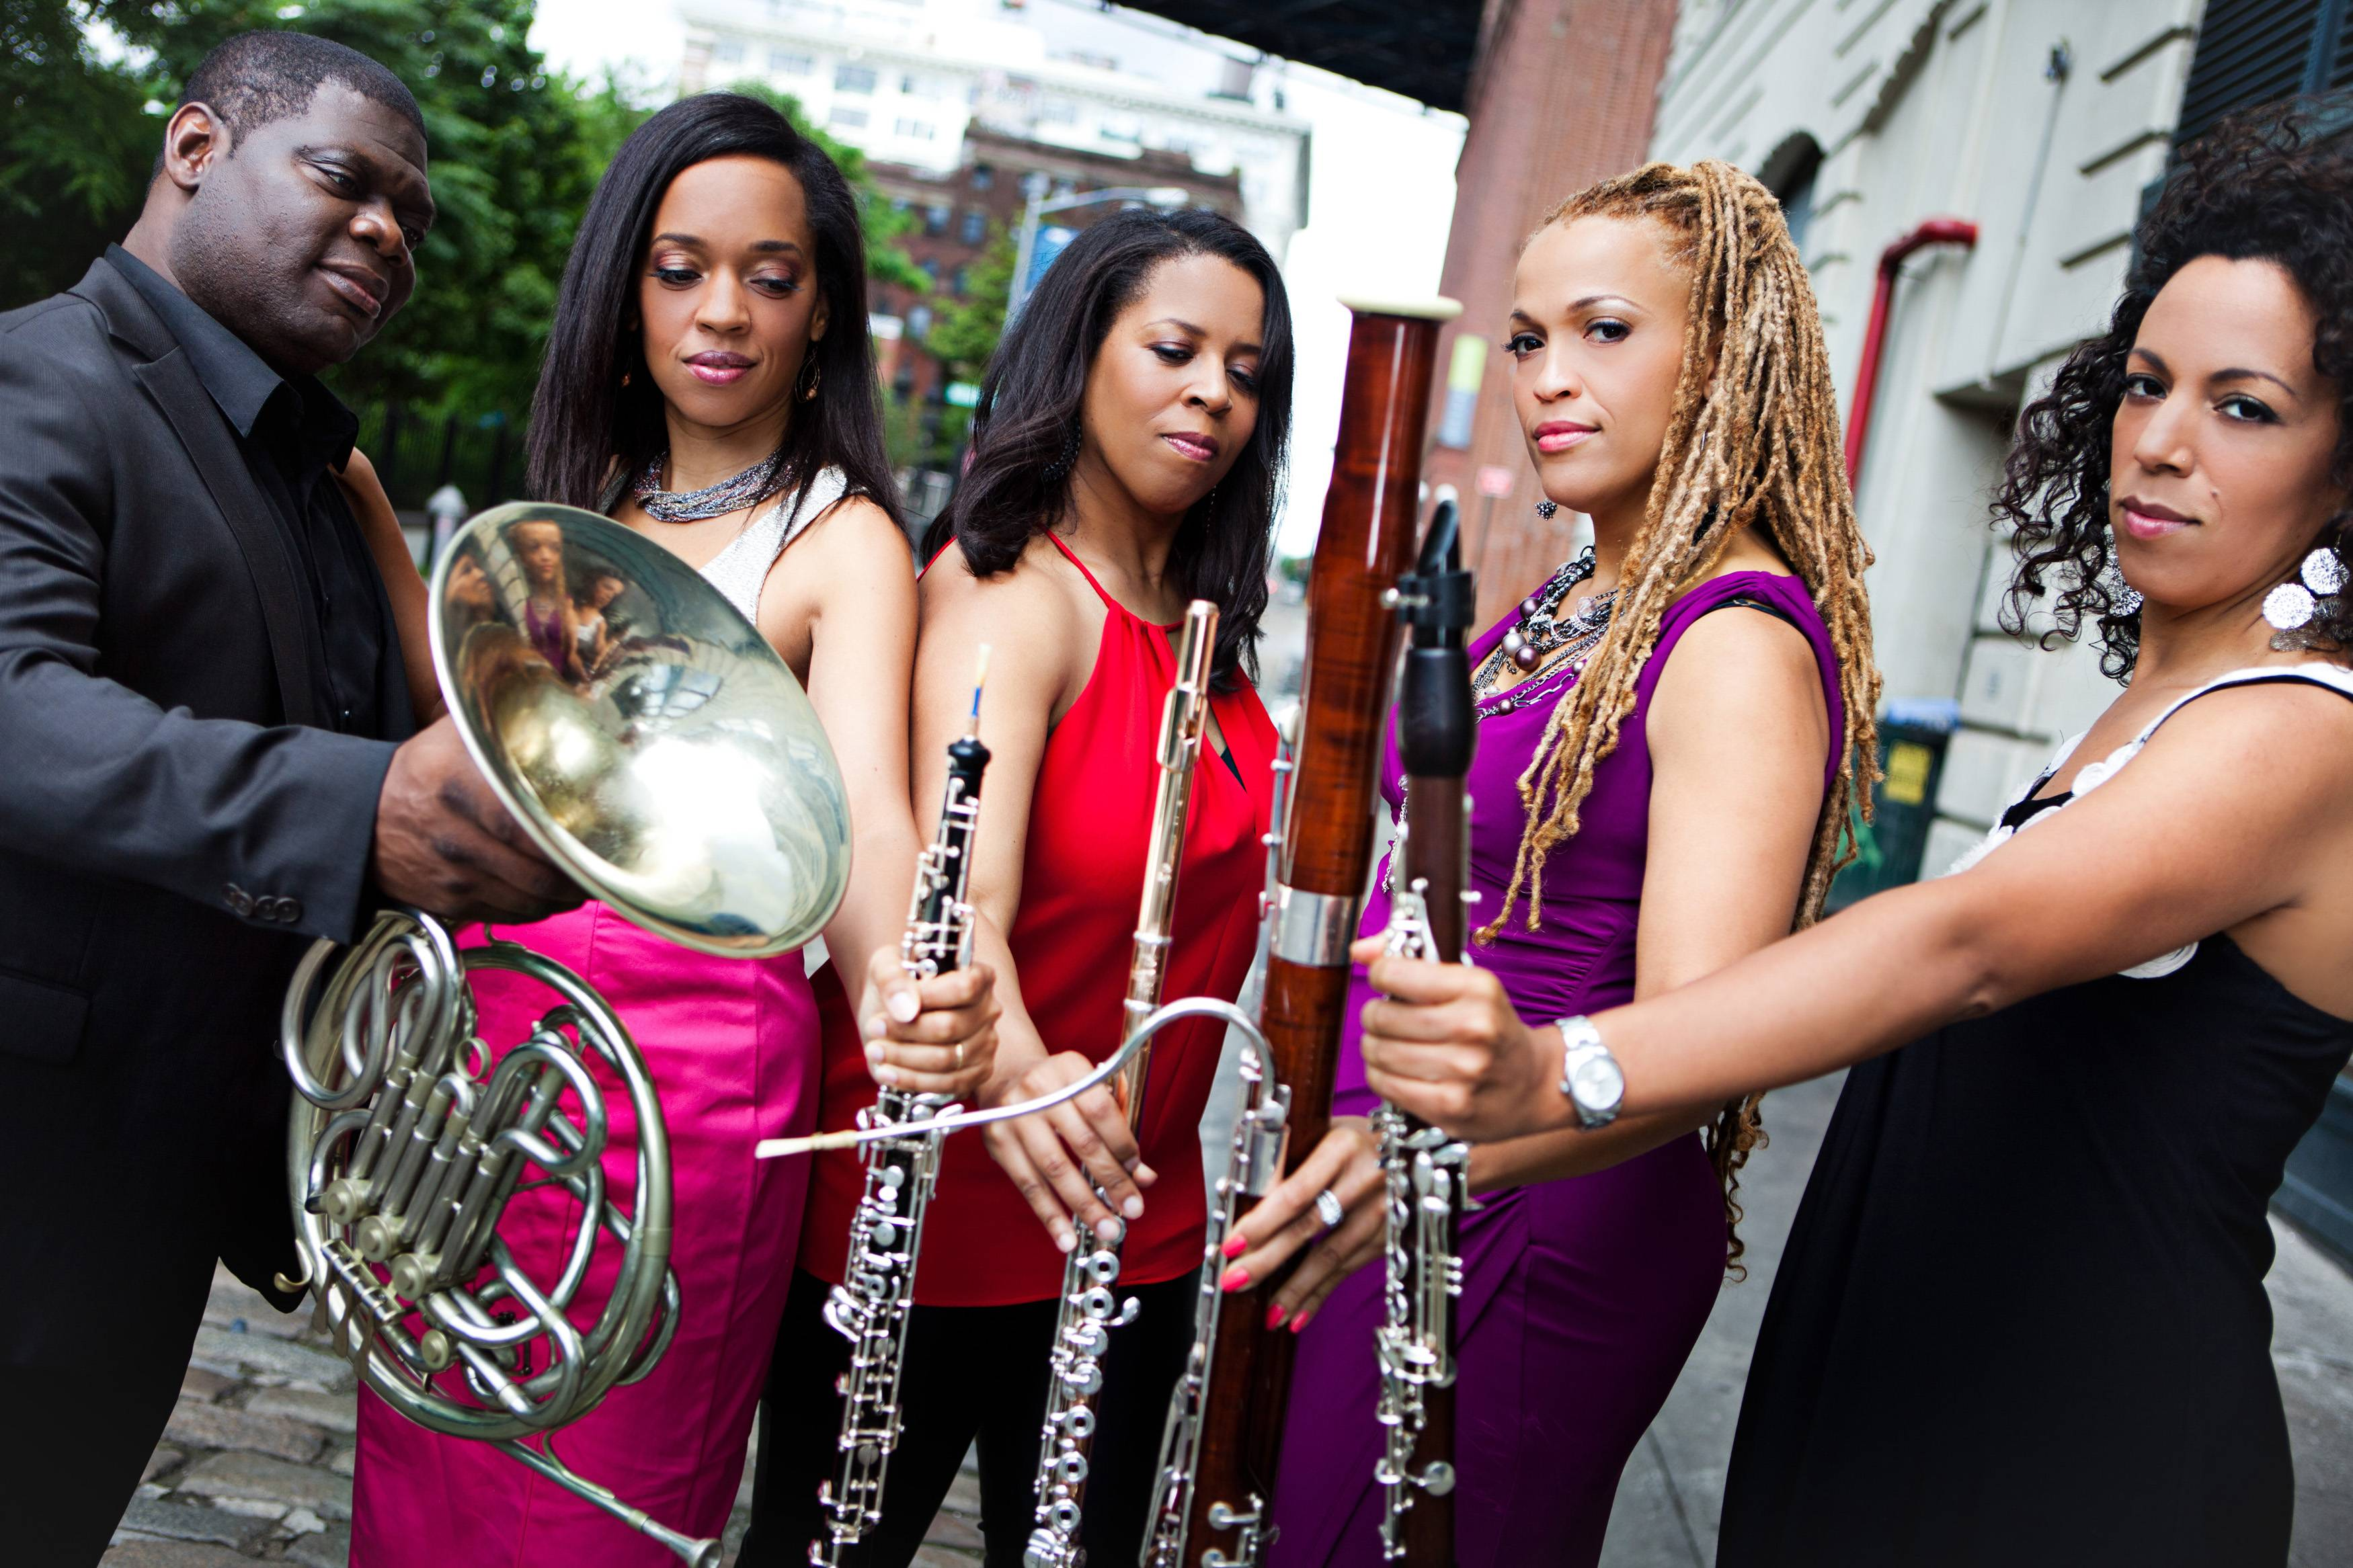 Imani Winds will perform at CLC on Feb. 14.